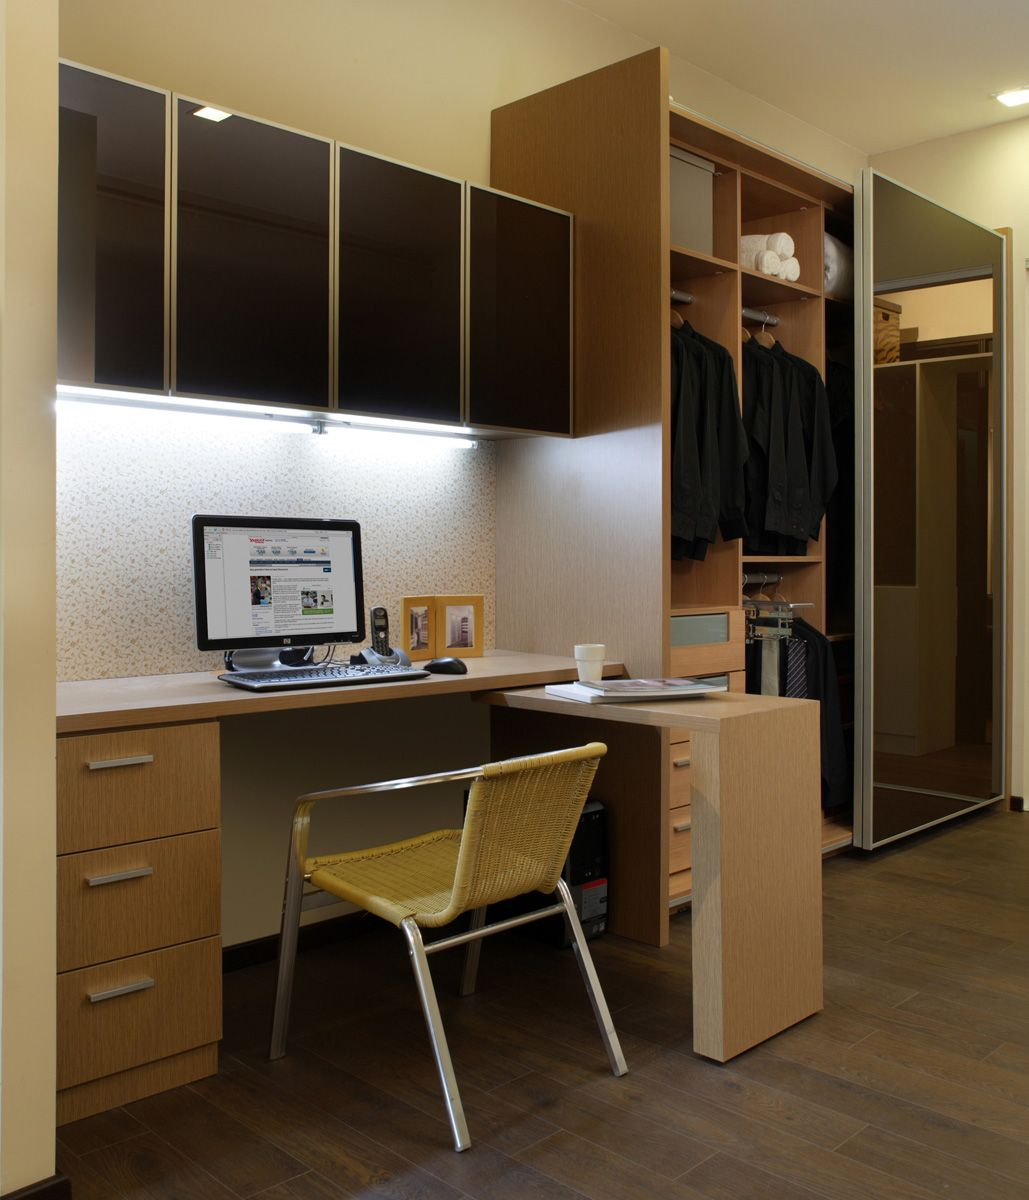 New Home Designs Latest Homes Interior Designs Studyrooms: Study Table With Wall Cabinet & Wardrobe